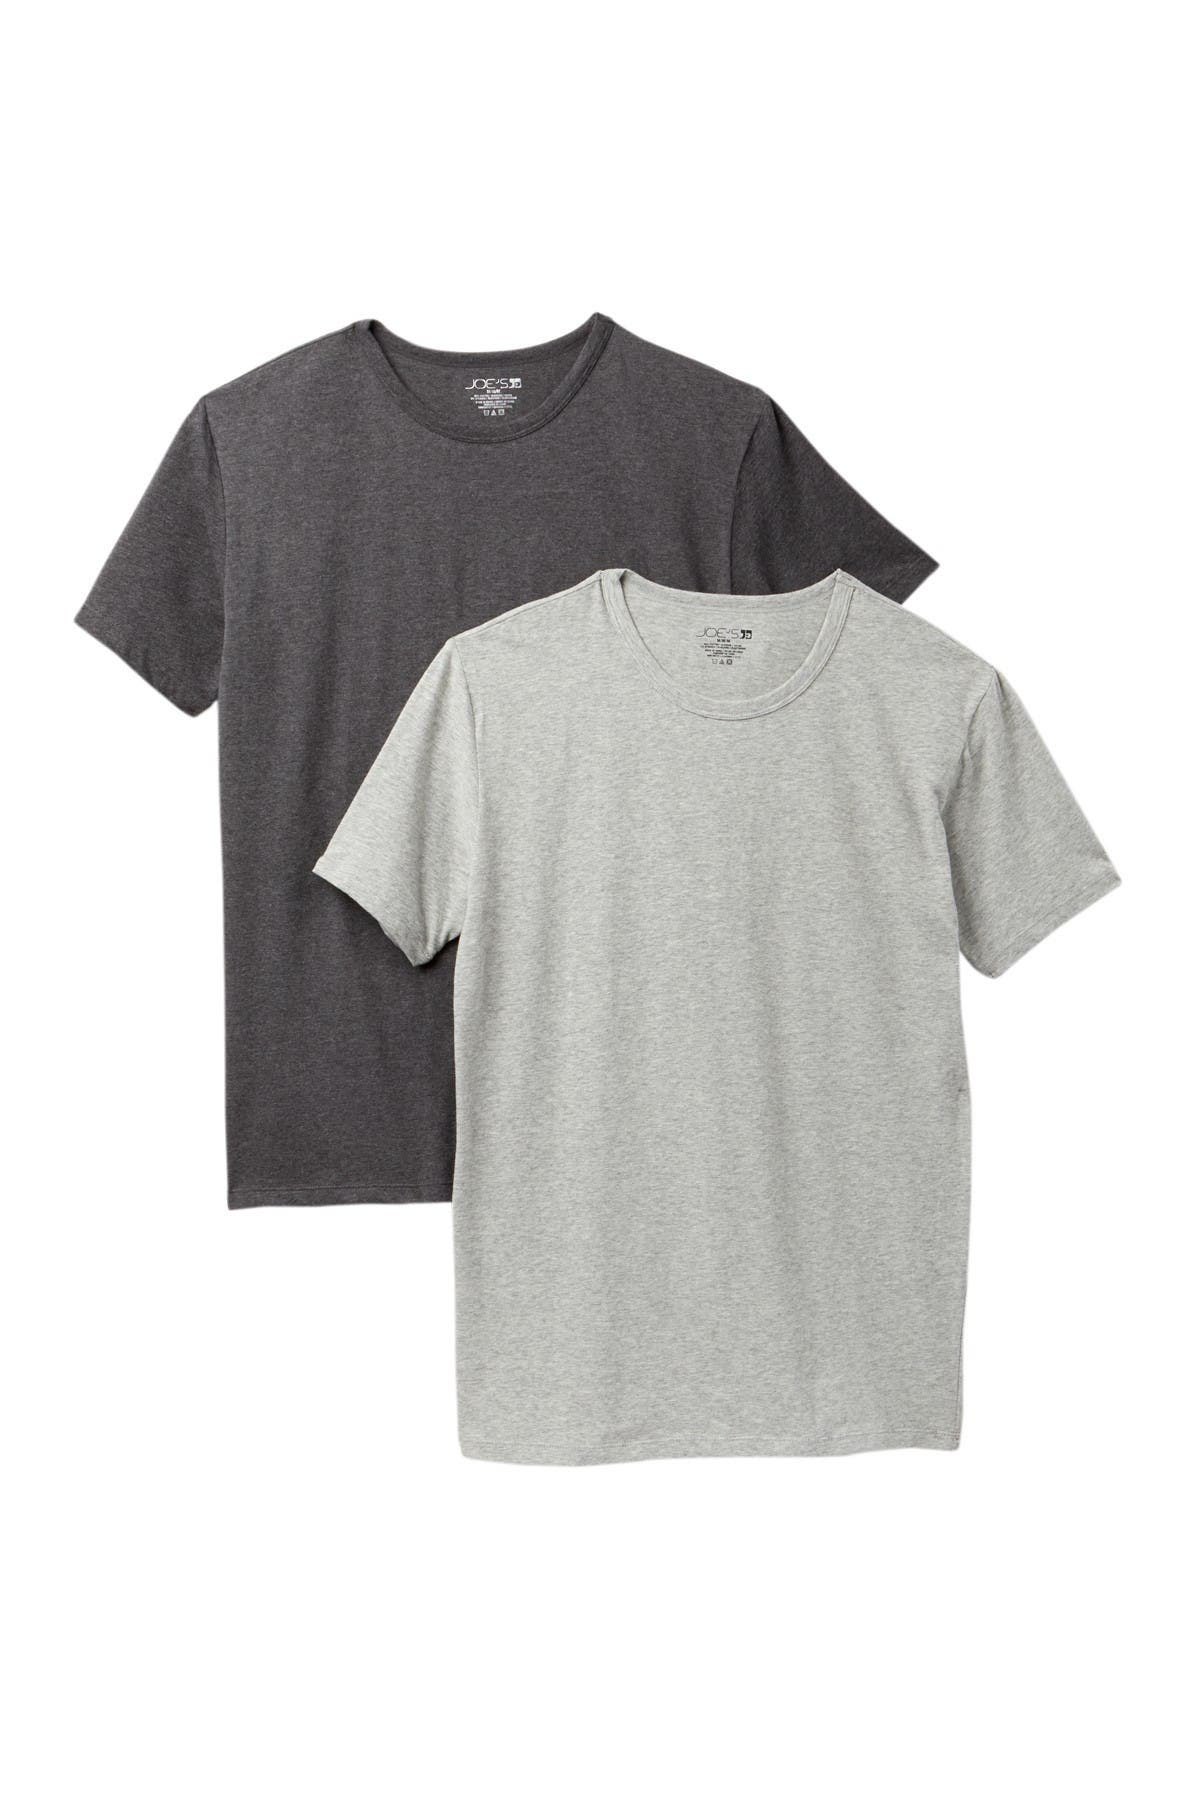 Image of Joe's Jeans Crew Neck T-Shirt - Pack of 2